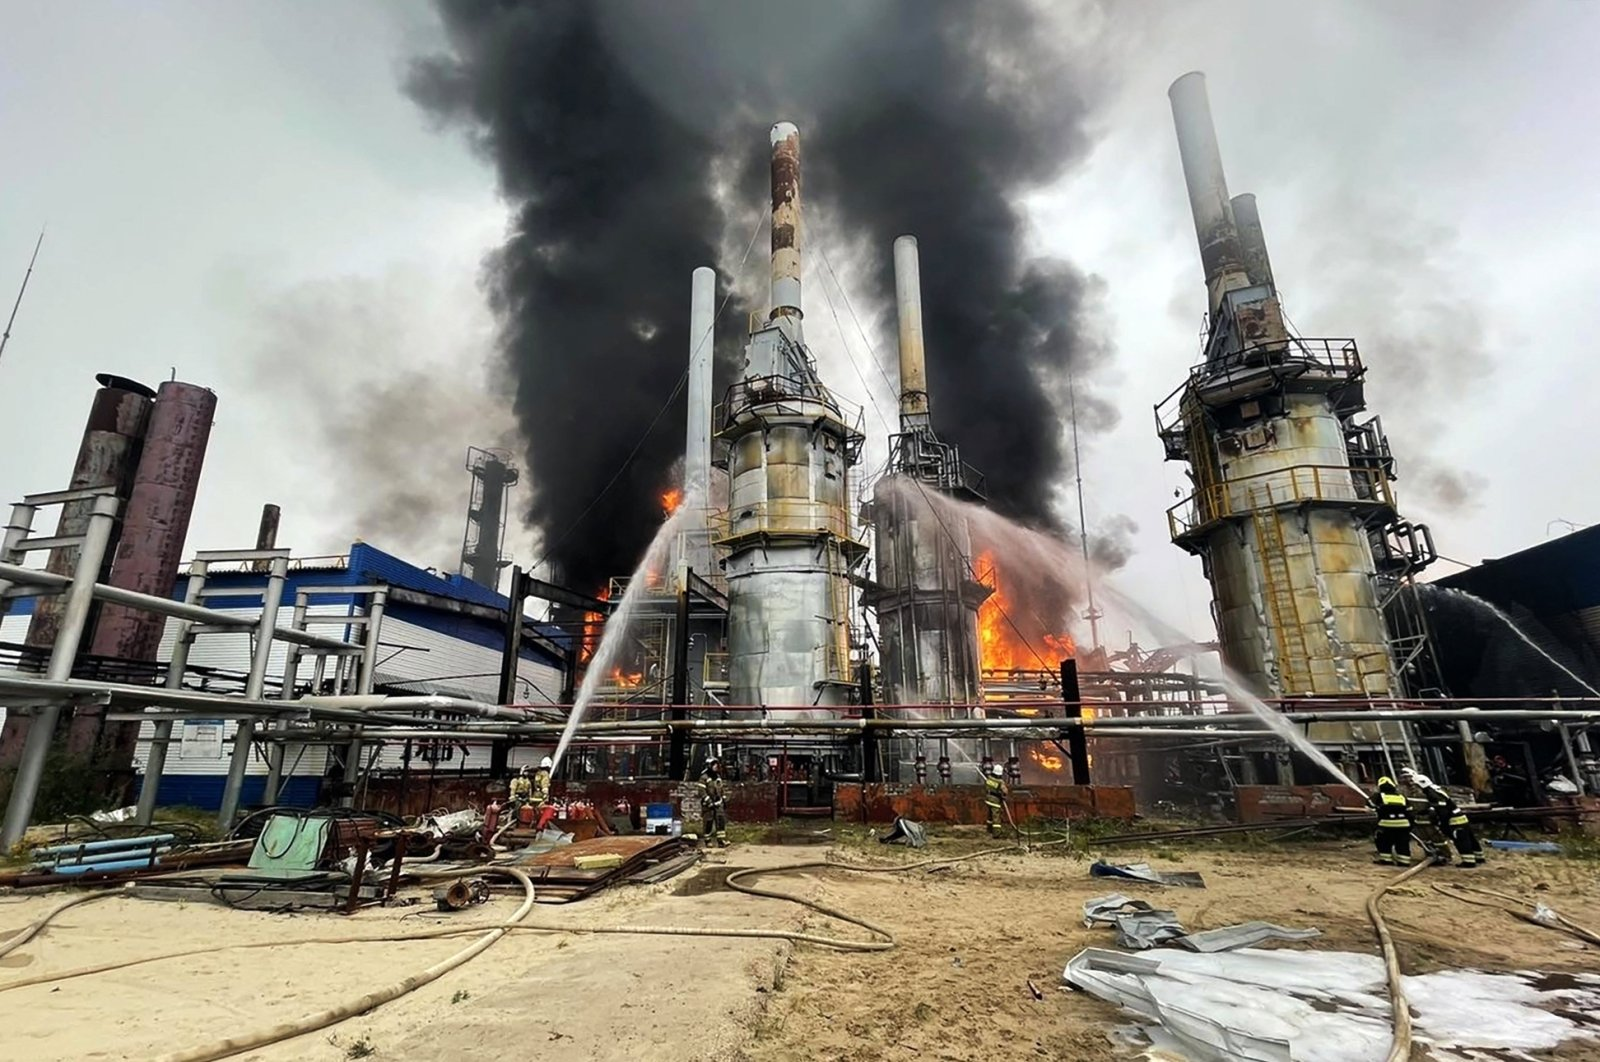 Firefighters spead water on a fire at a Gazprom gas condensate plant near the city of Novy Urengoy in Western Siberia, Russia, Aug. 6, 2021. (Photo by Russian Emergency Ministry via AFP)